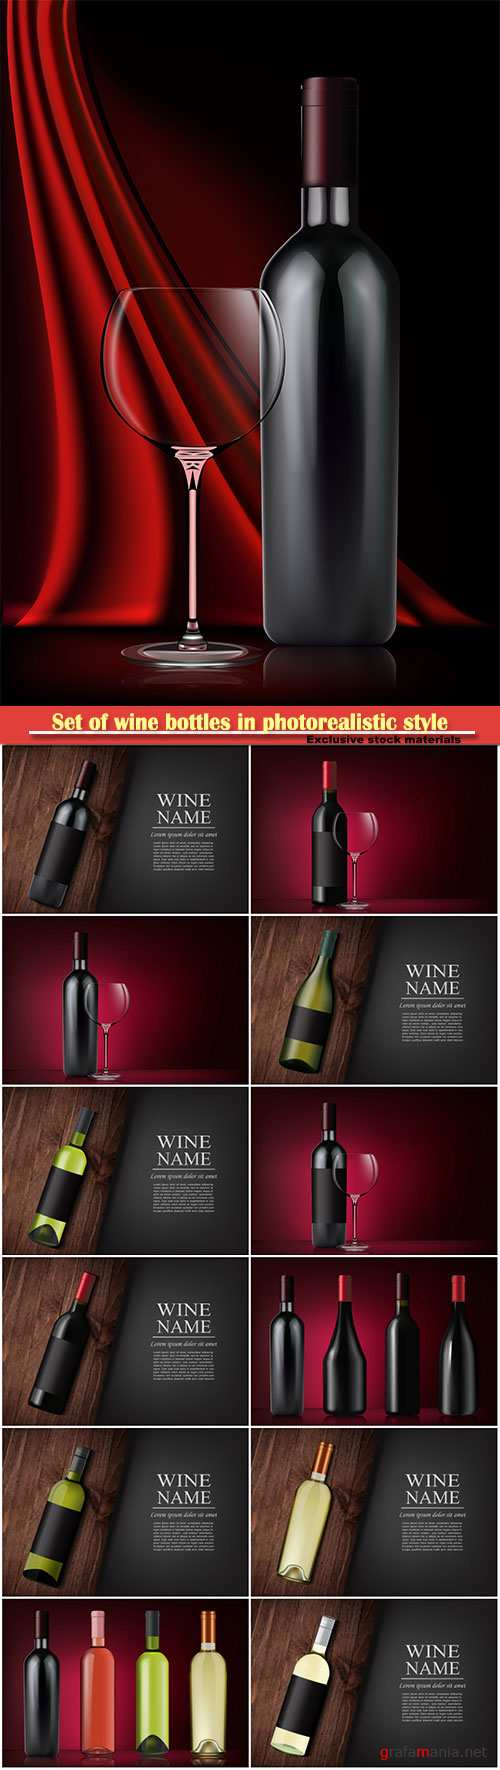 Set of wine bottles in photorealistic style, vector pink, white, red wines